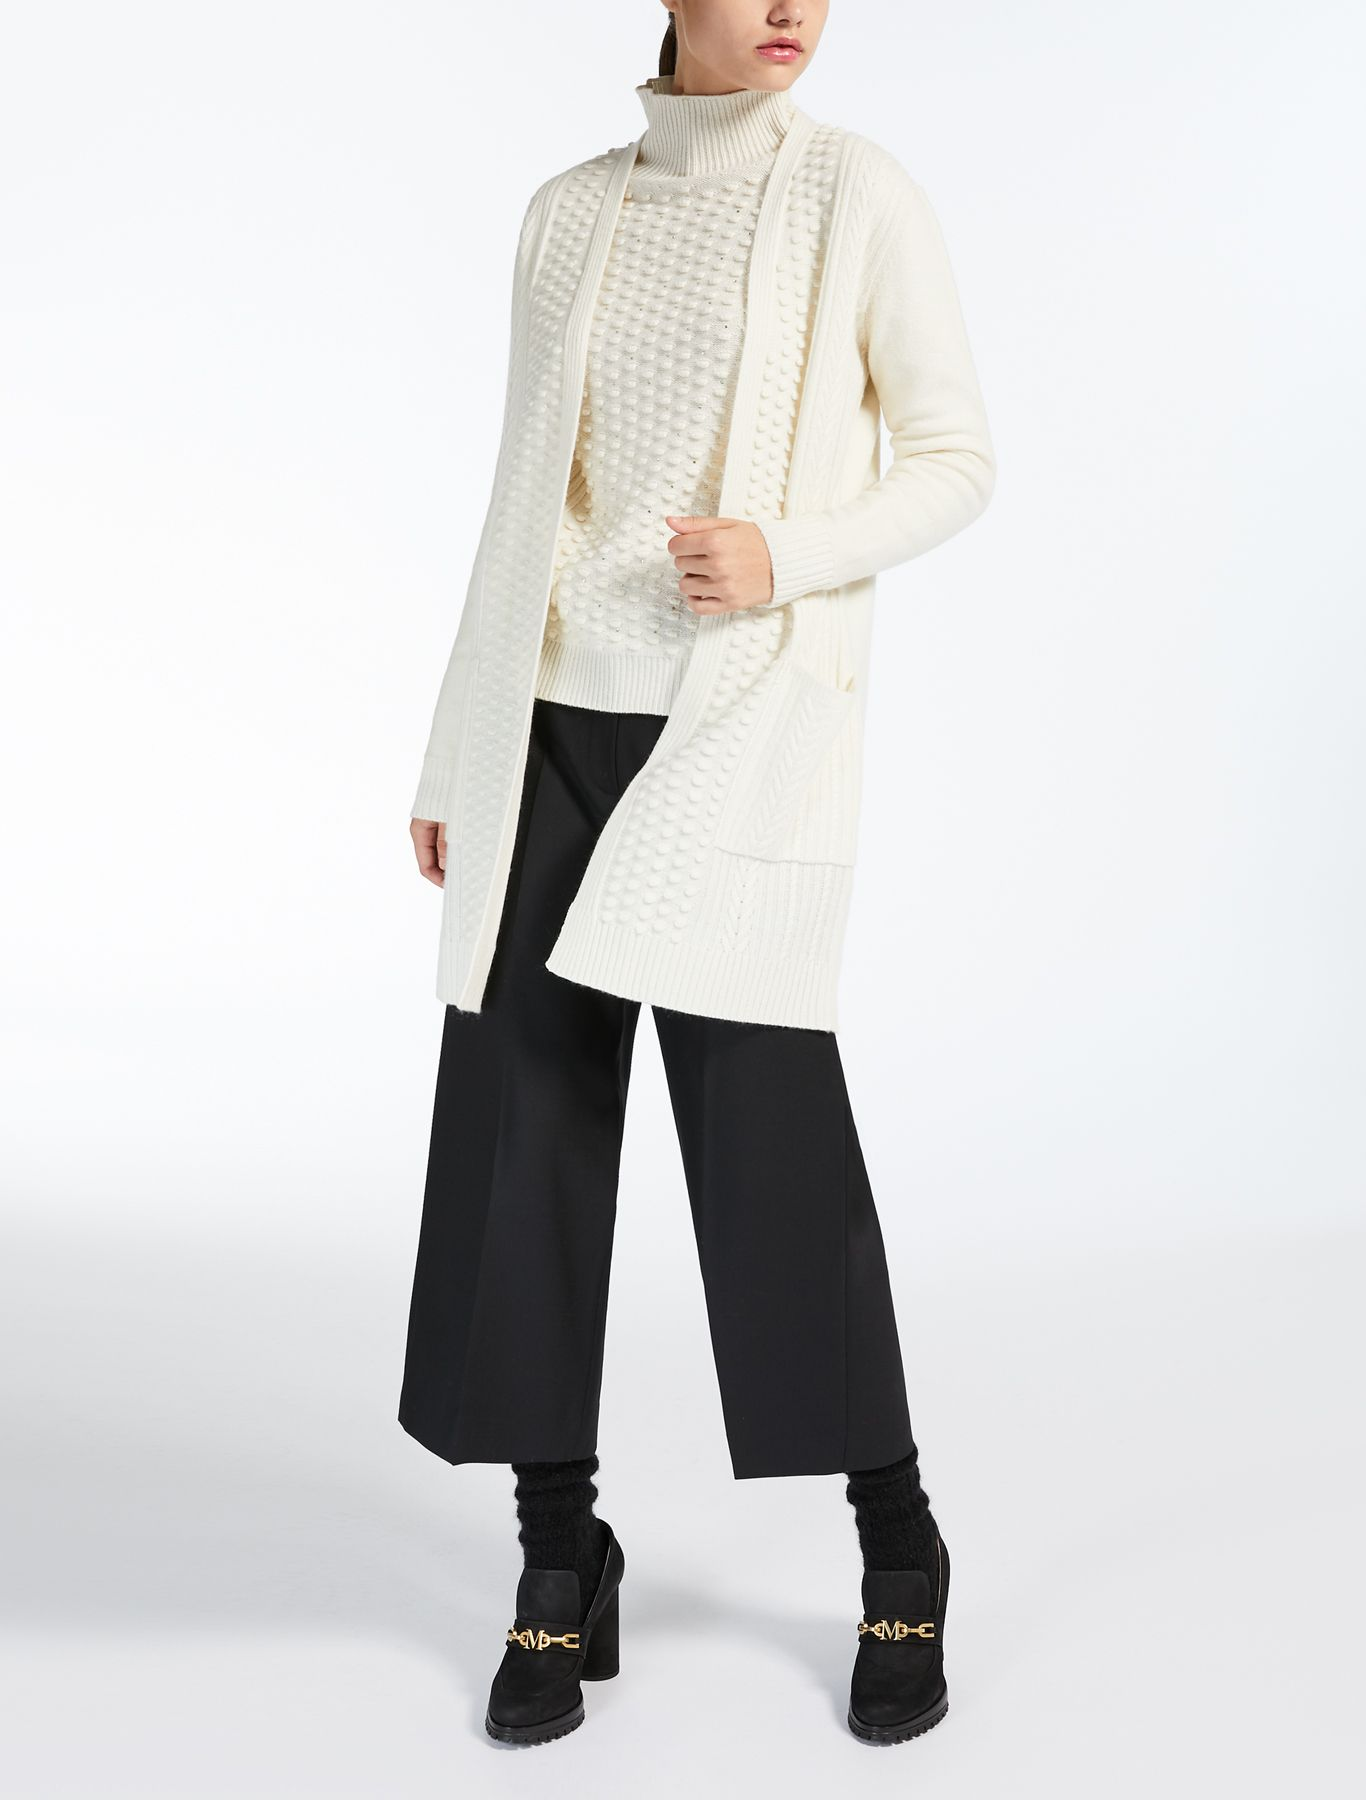 691cf7c65a Coat Length Cashmere Sweater A Wardrobe Staple Max Mara The Cashmere  Cardigan  A Wardrobe Staple for your winter fashion needs.